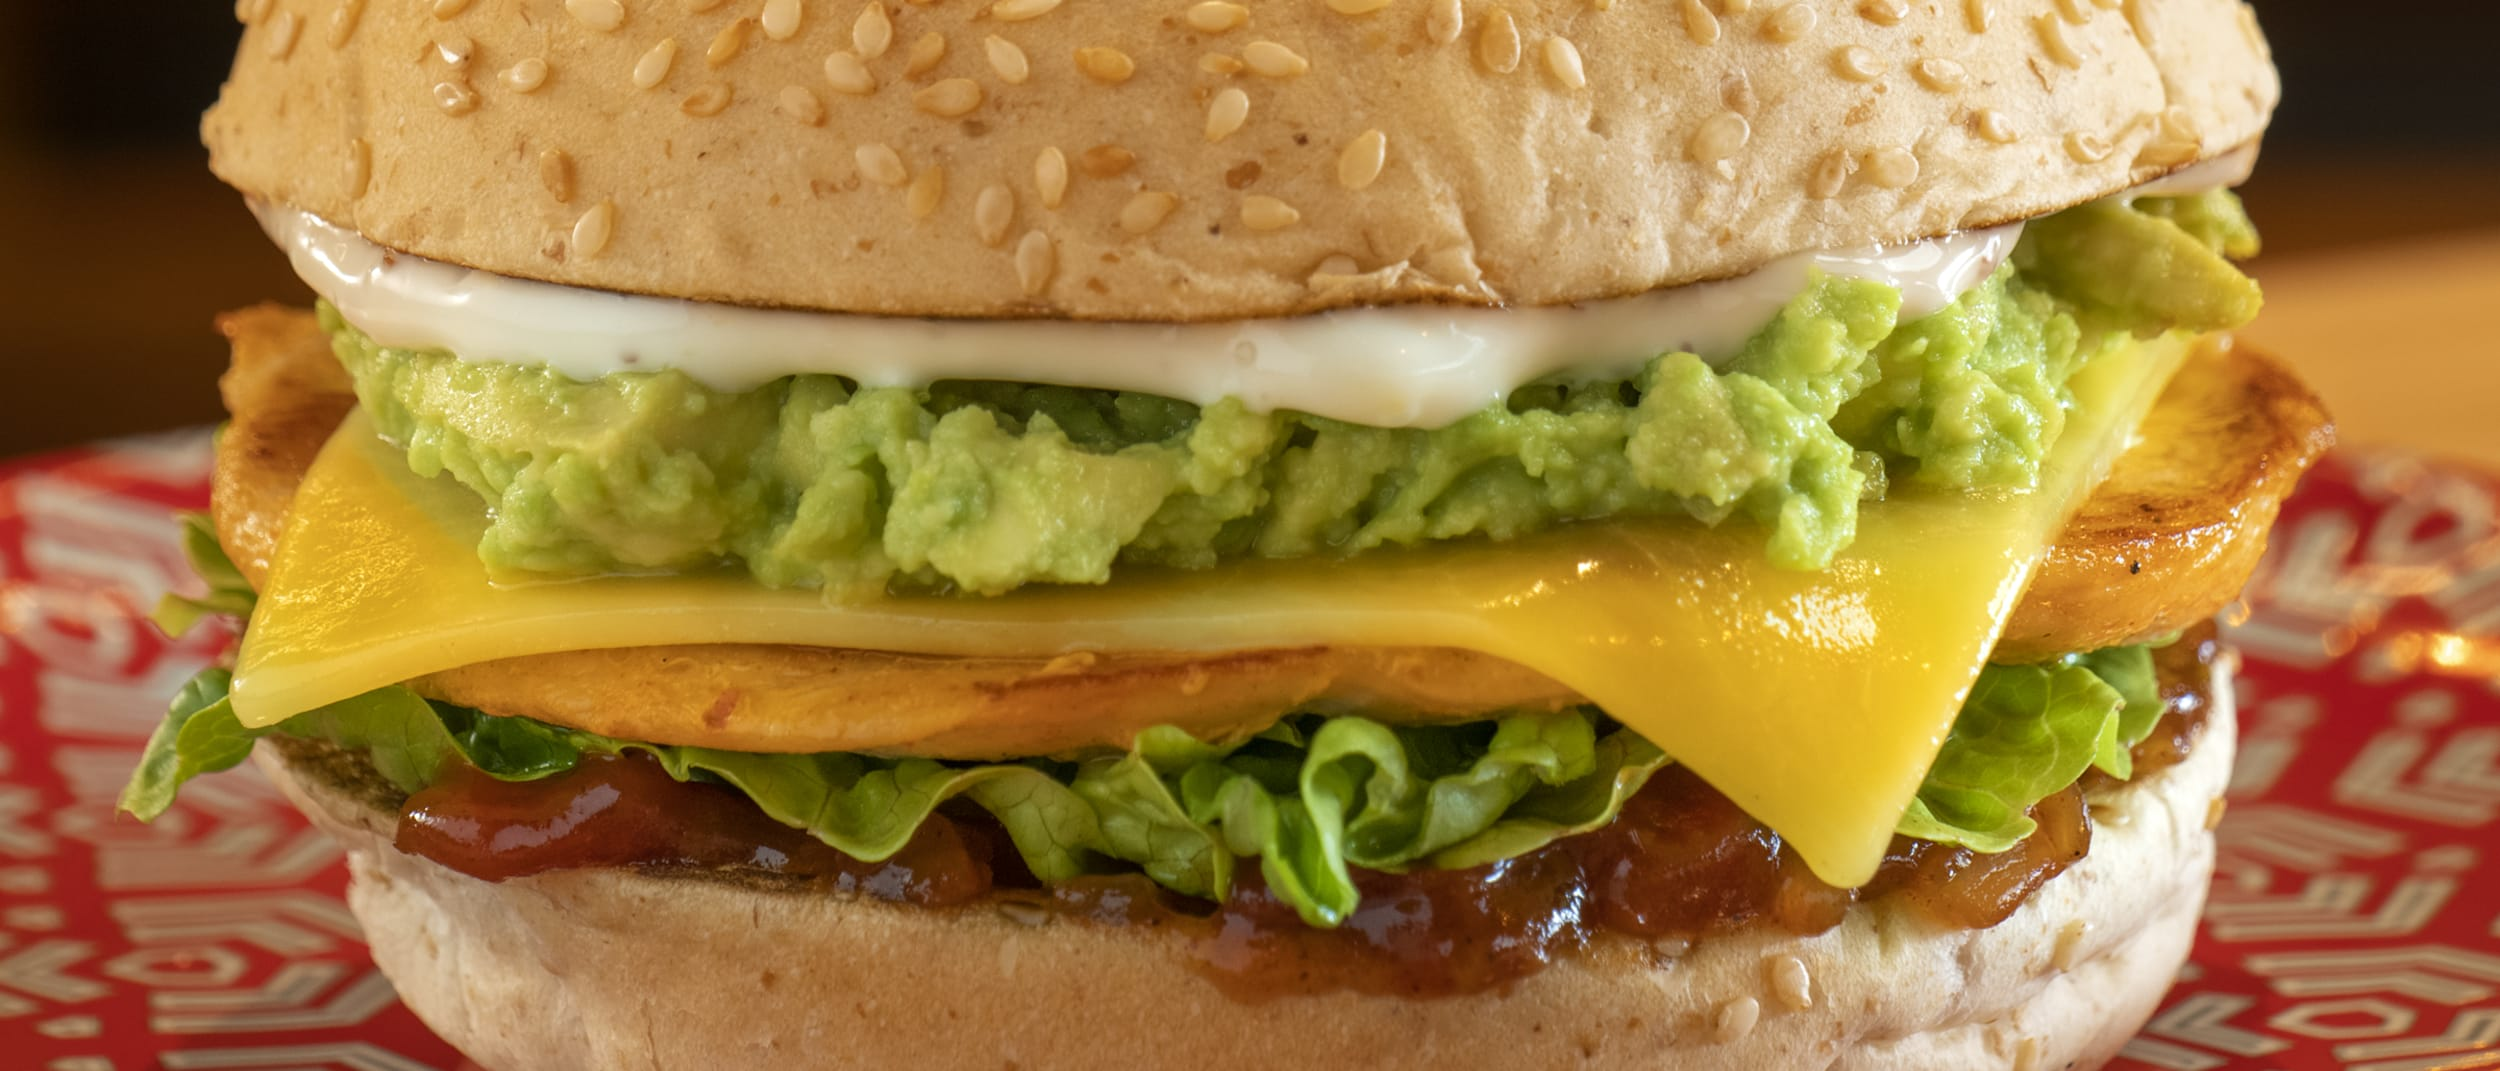 Nandos: The Avo Burger